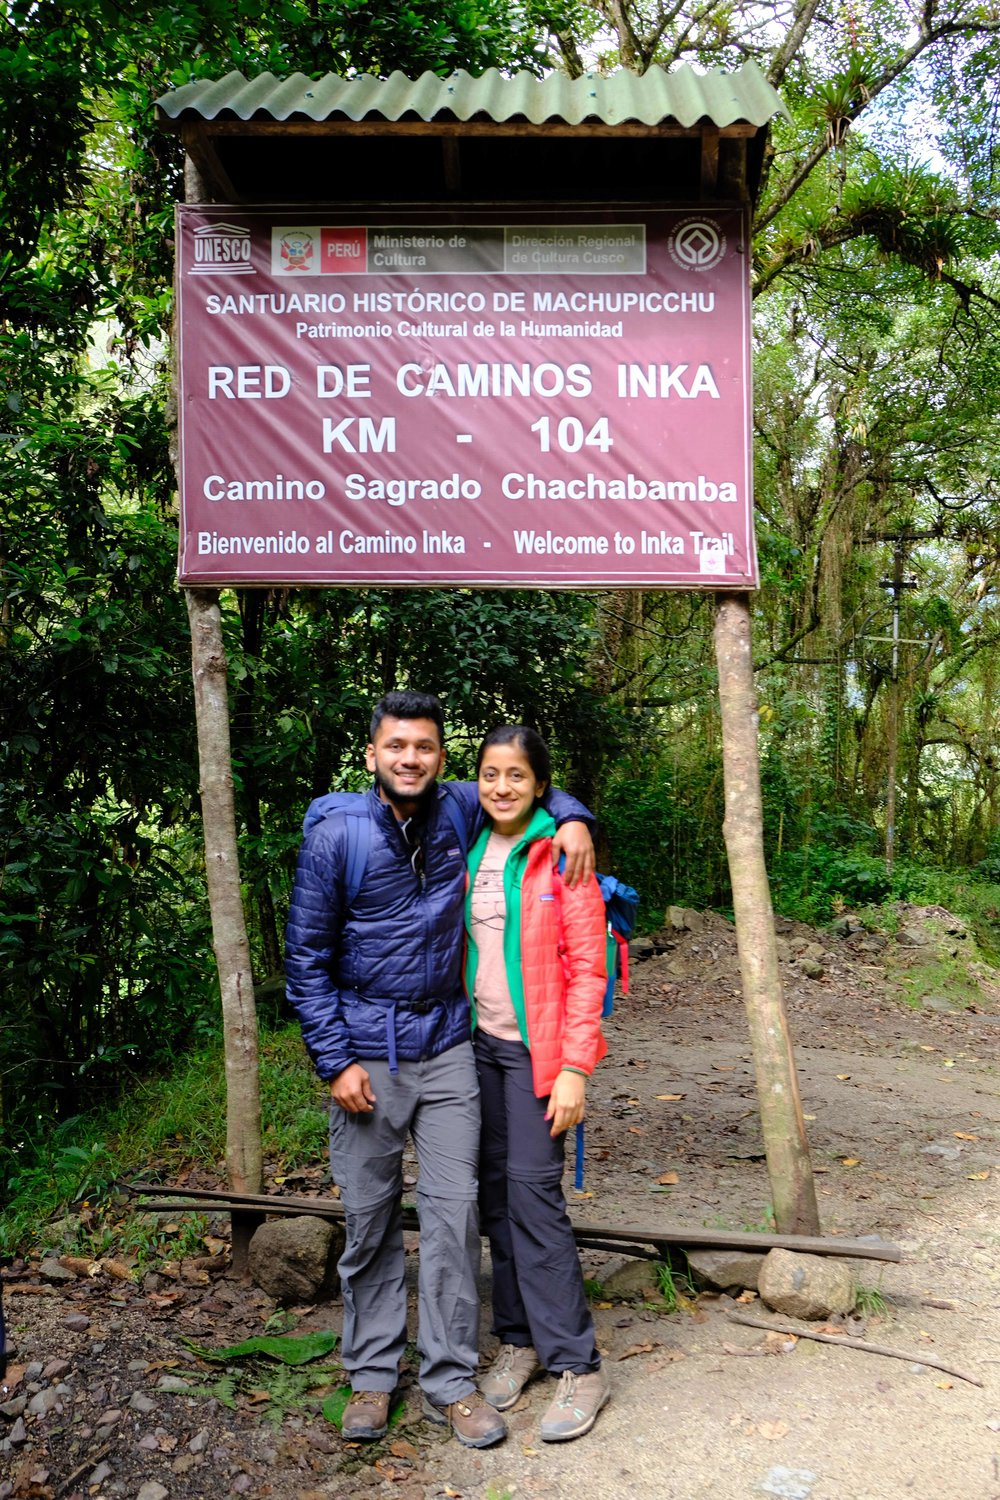 Photo in front of KM 104 signage